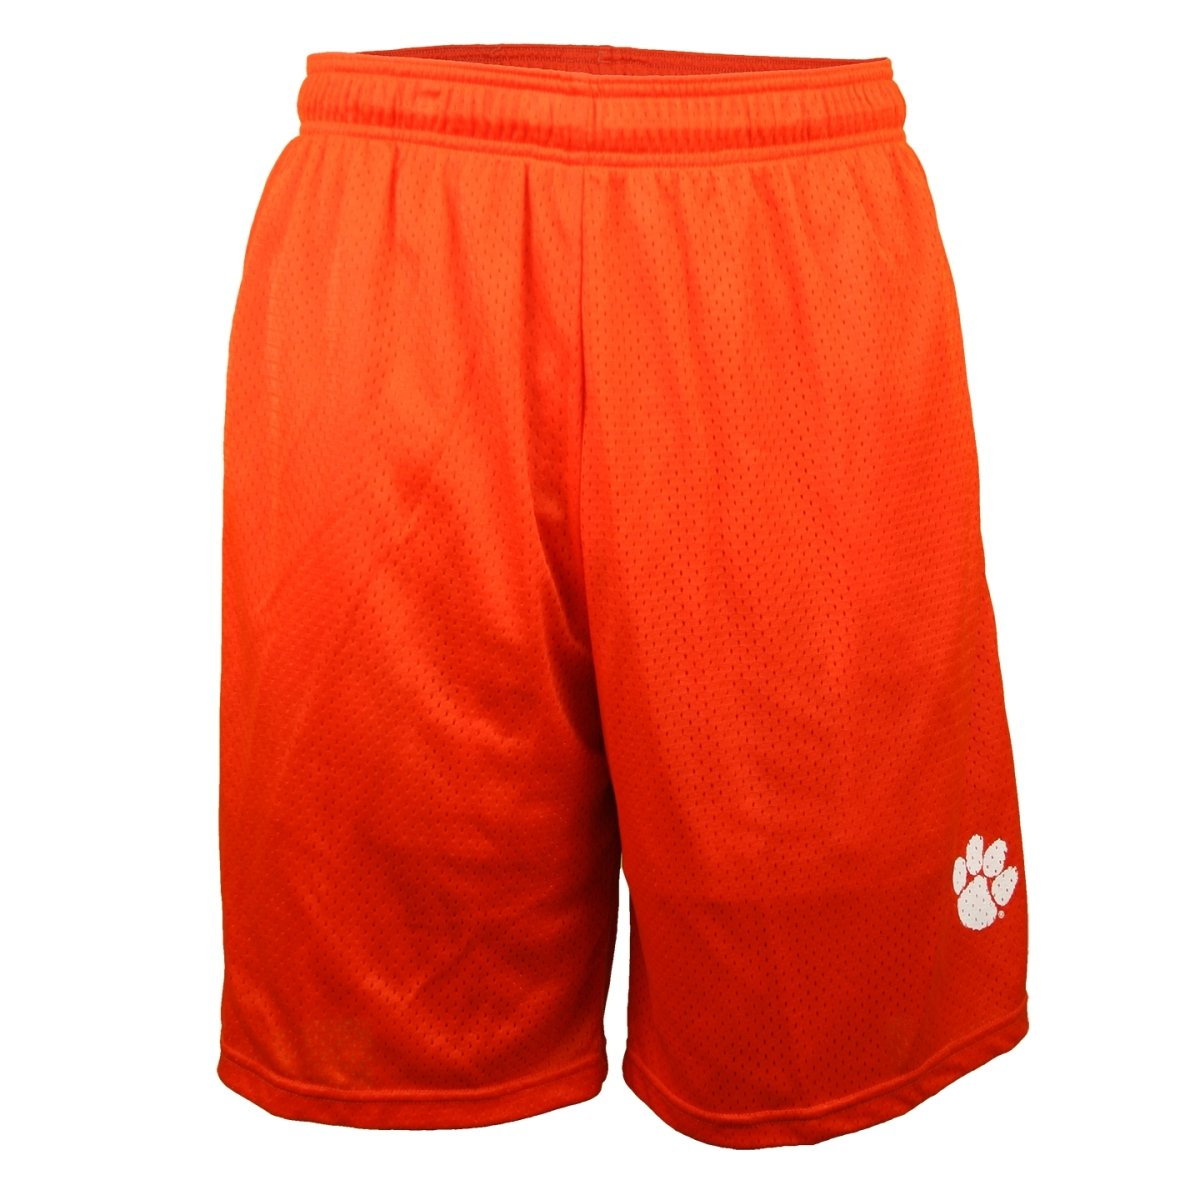 Youth Mesh Shorts With Paw - Mr. Knickerbocker